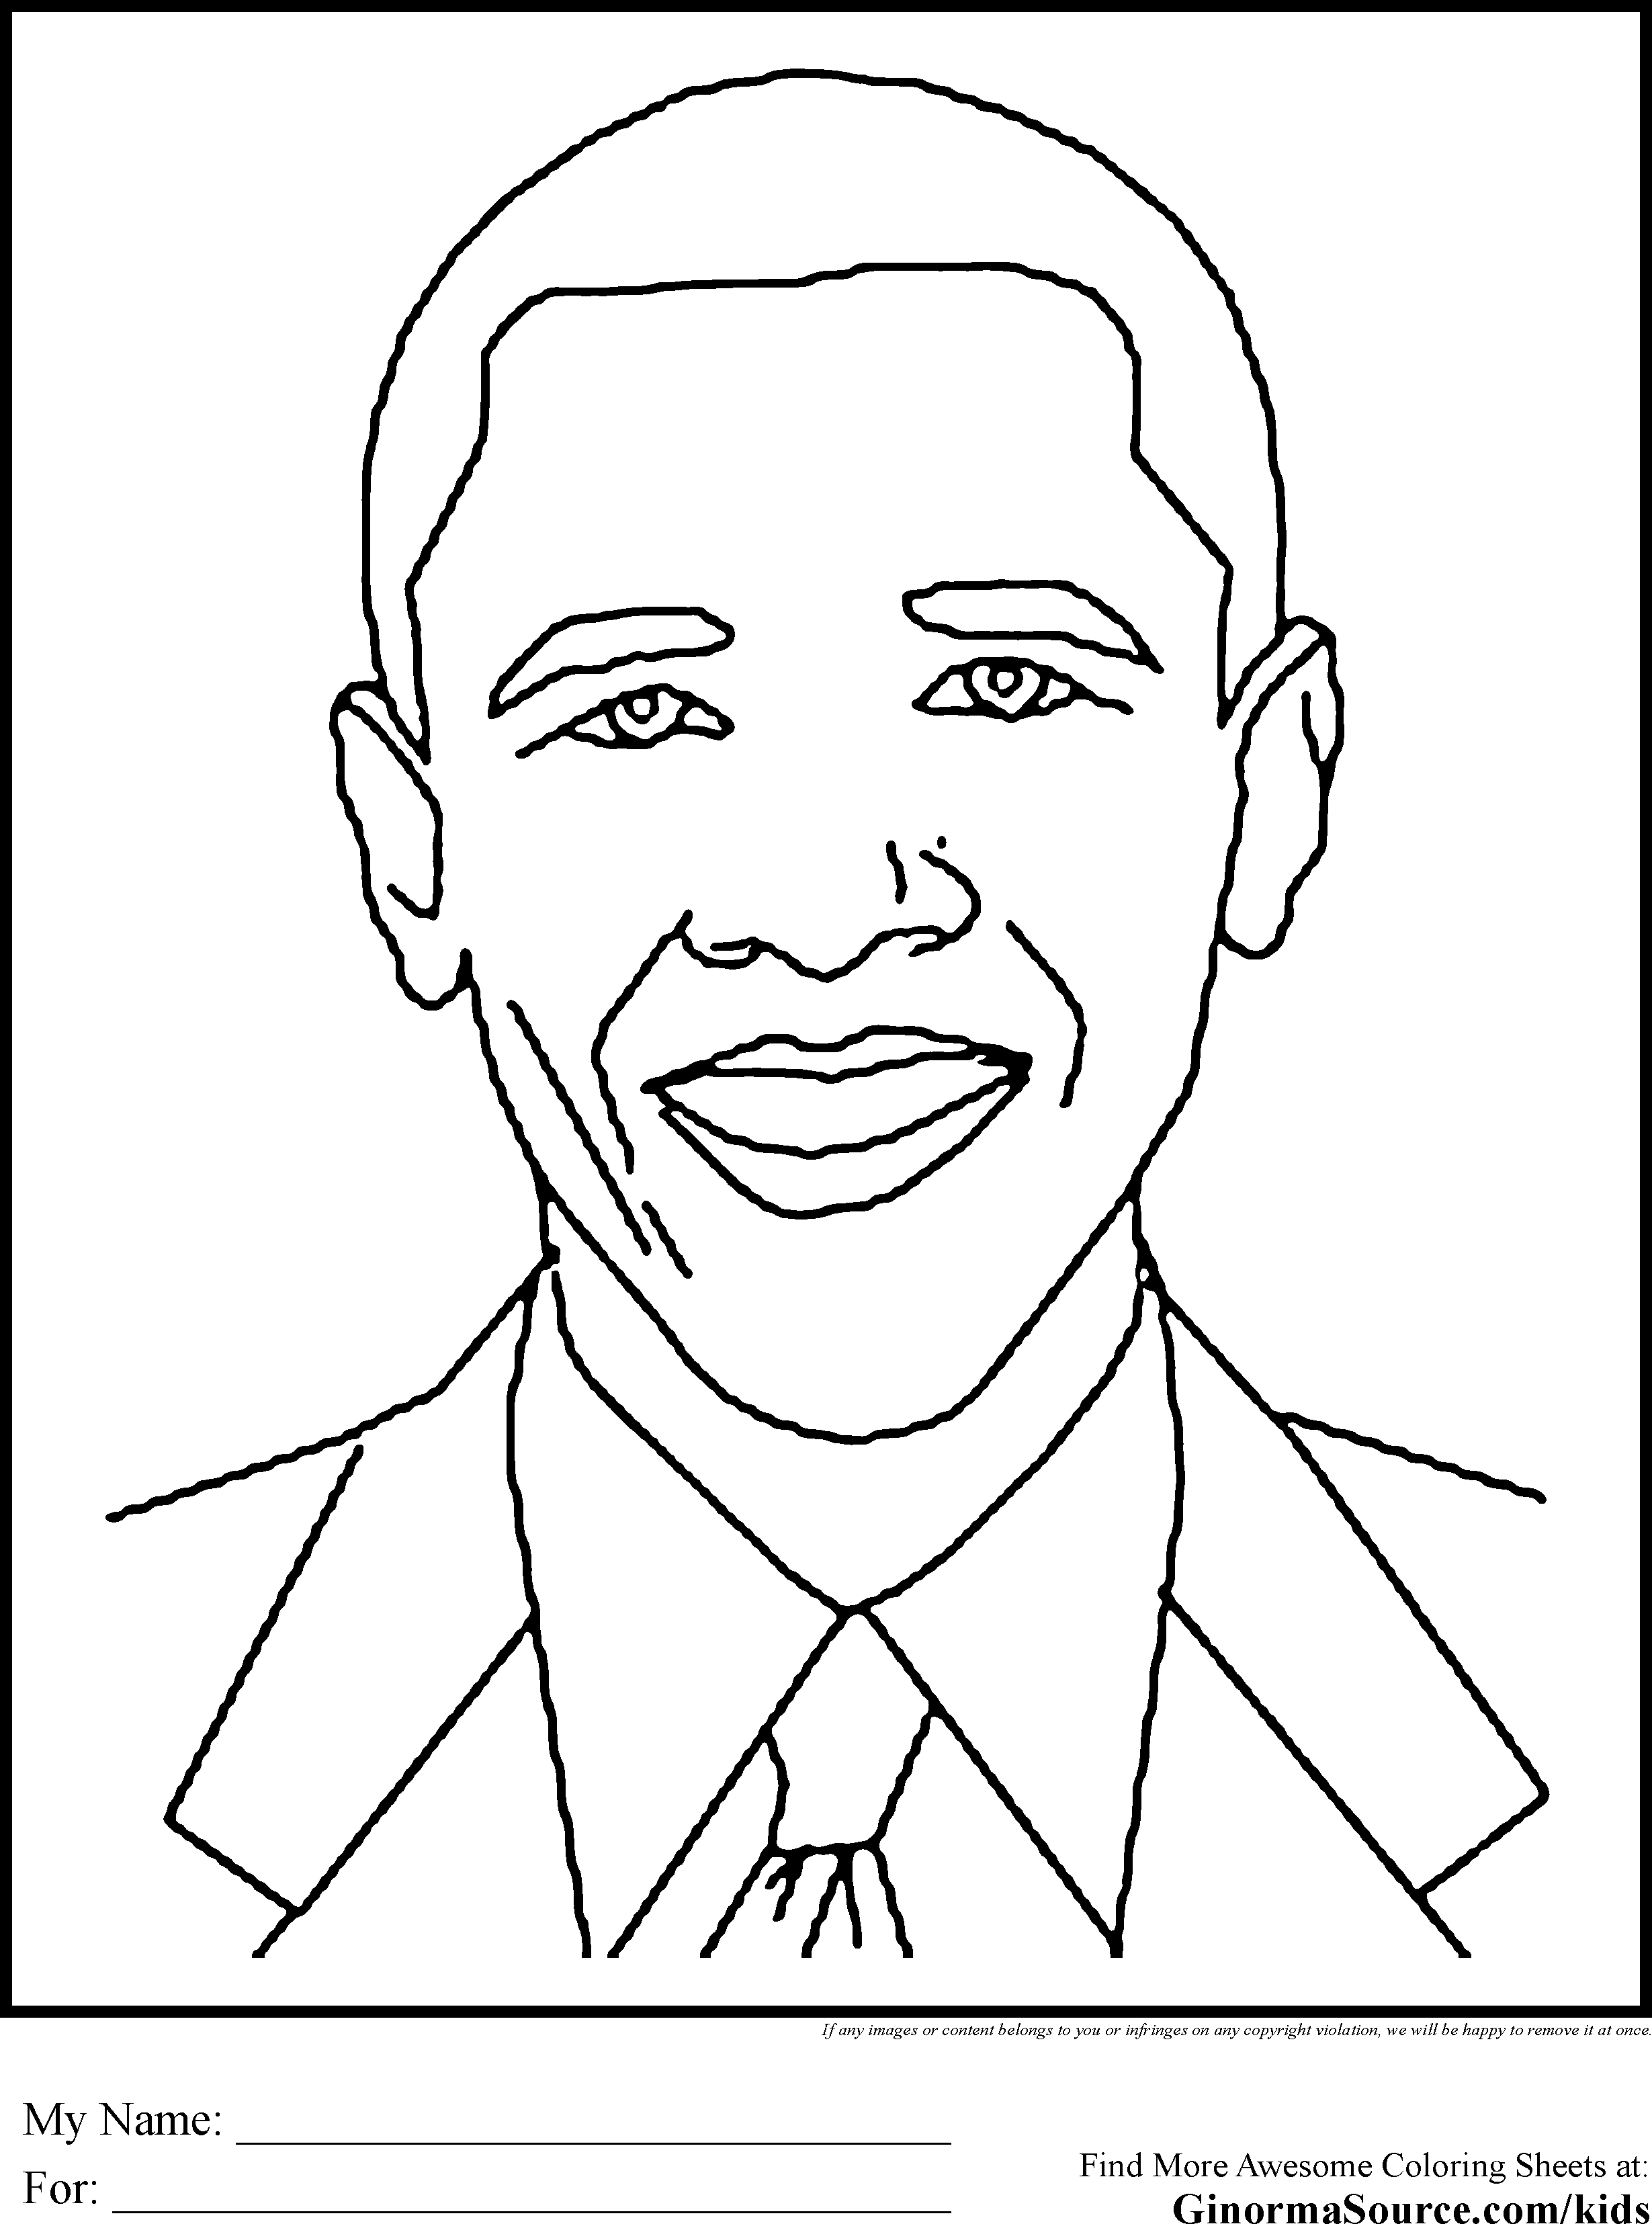 Black History Coloring Pages Obama Black History Activities Black History Month Preschool Black History Month Crafts